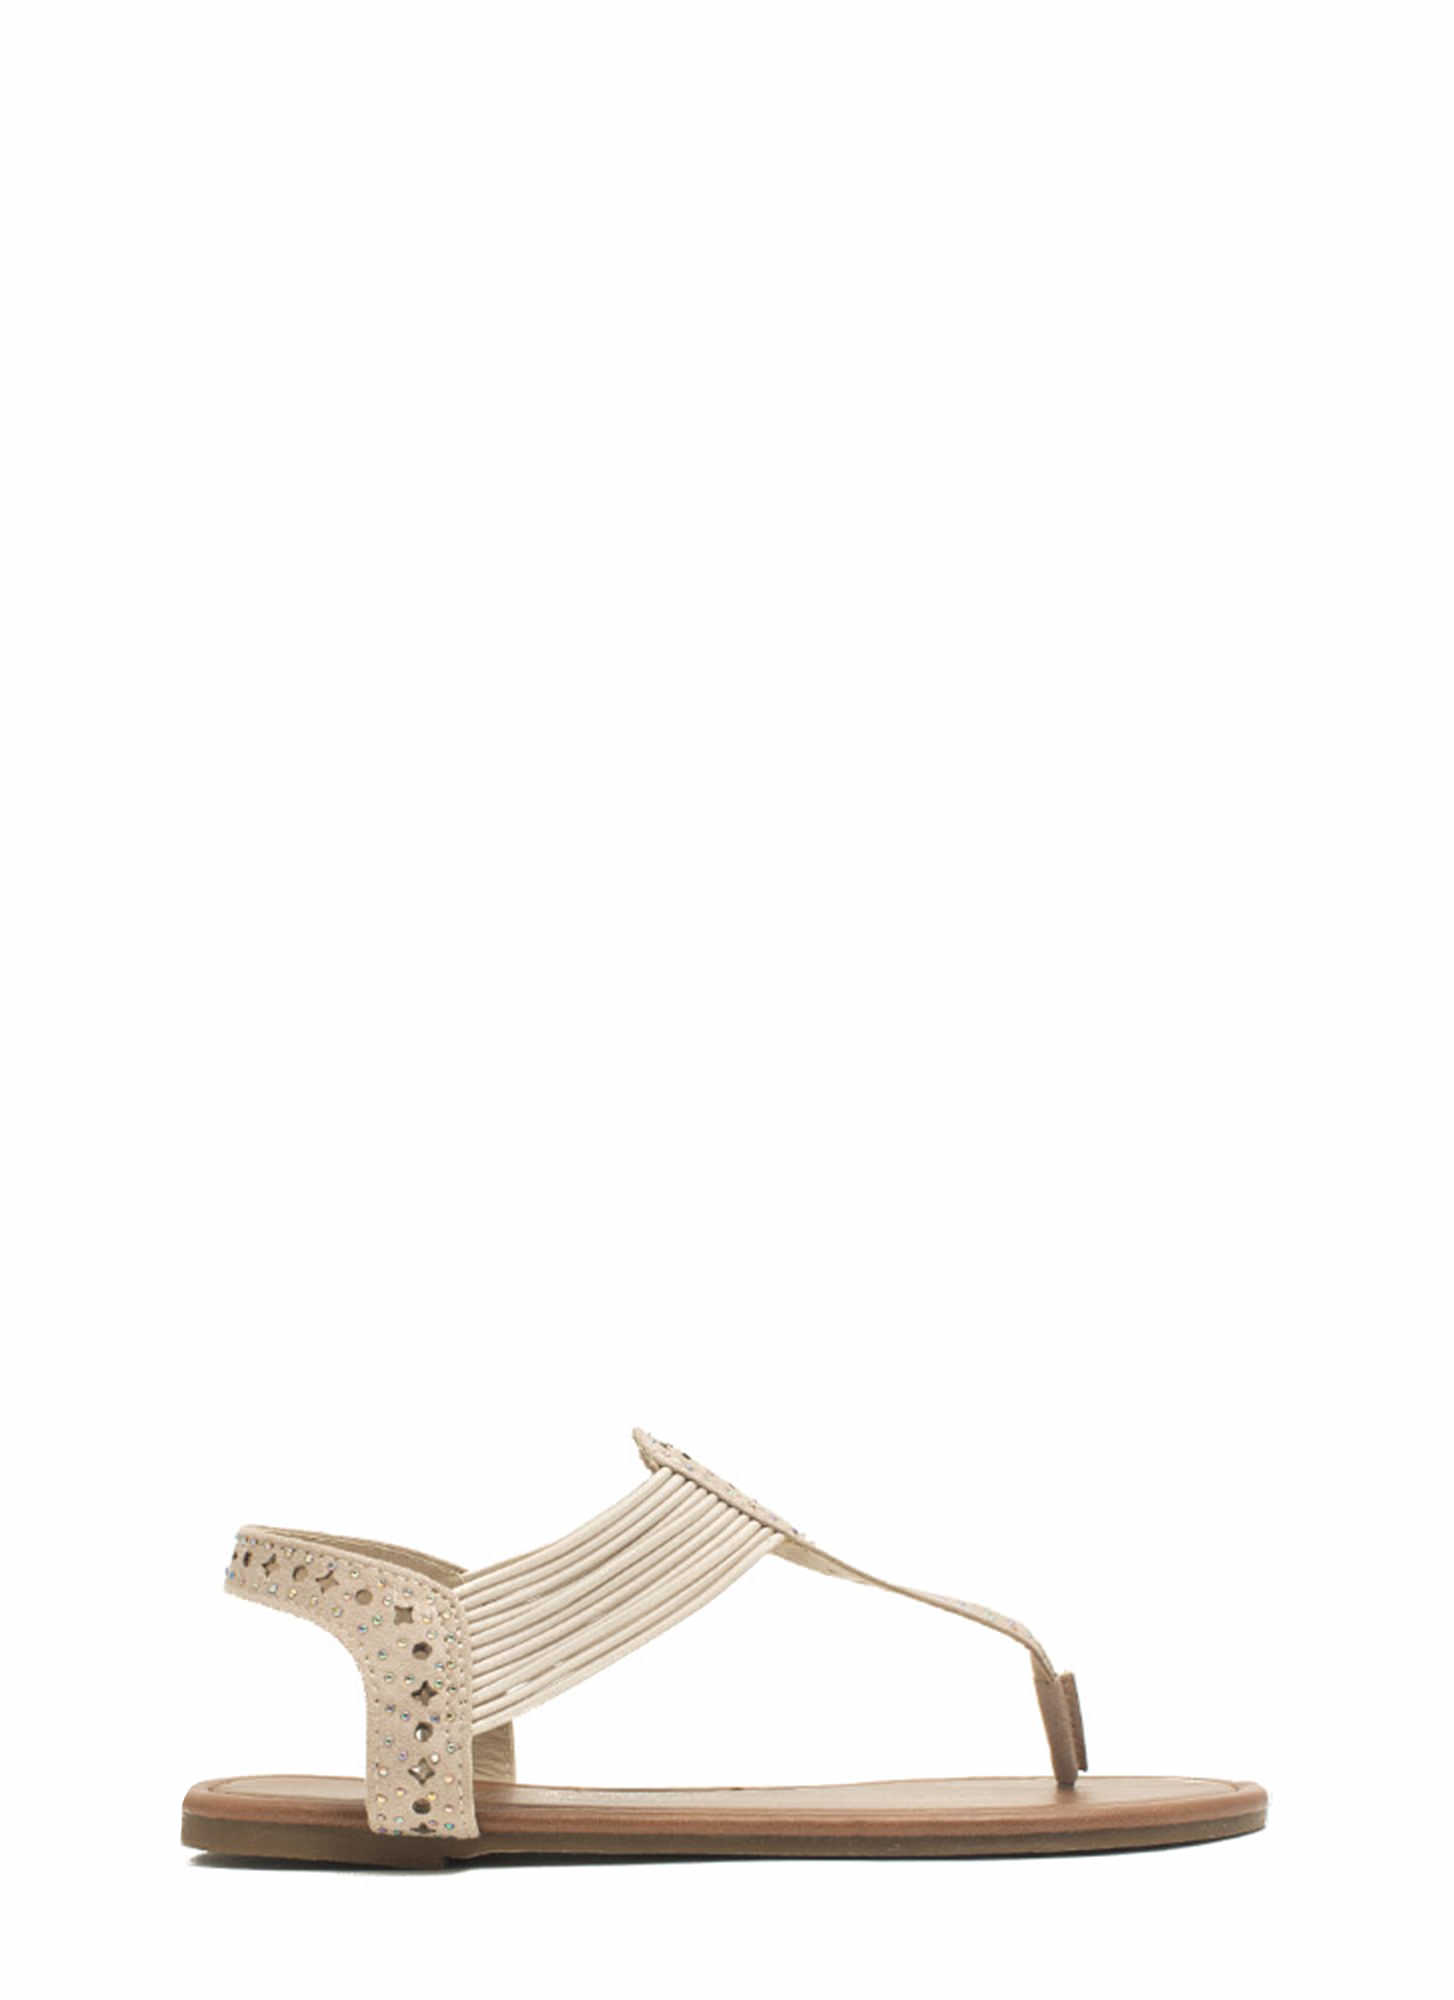 Embellished Cord T-Strap Sandals NUDE